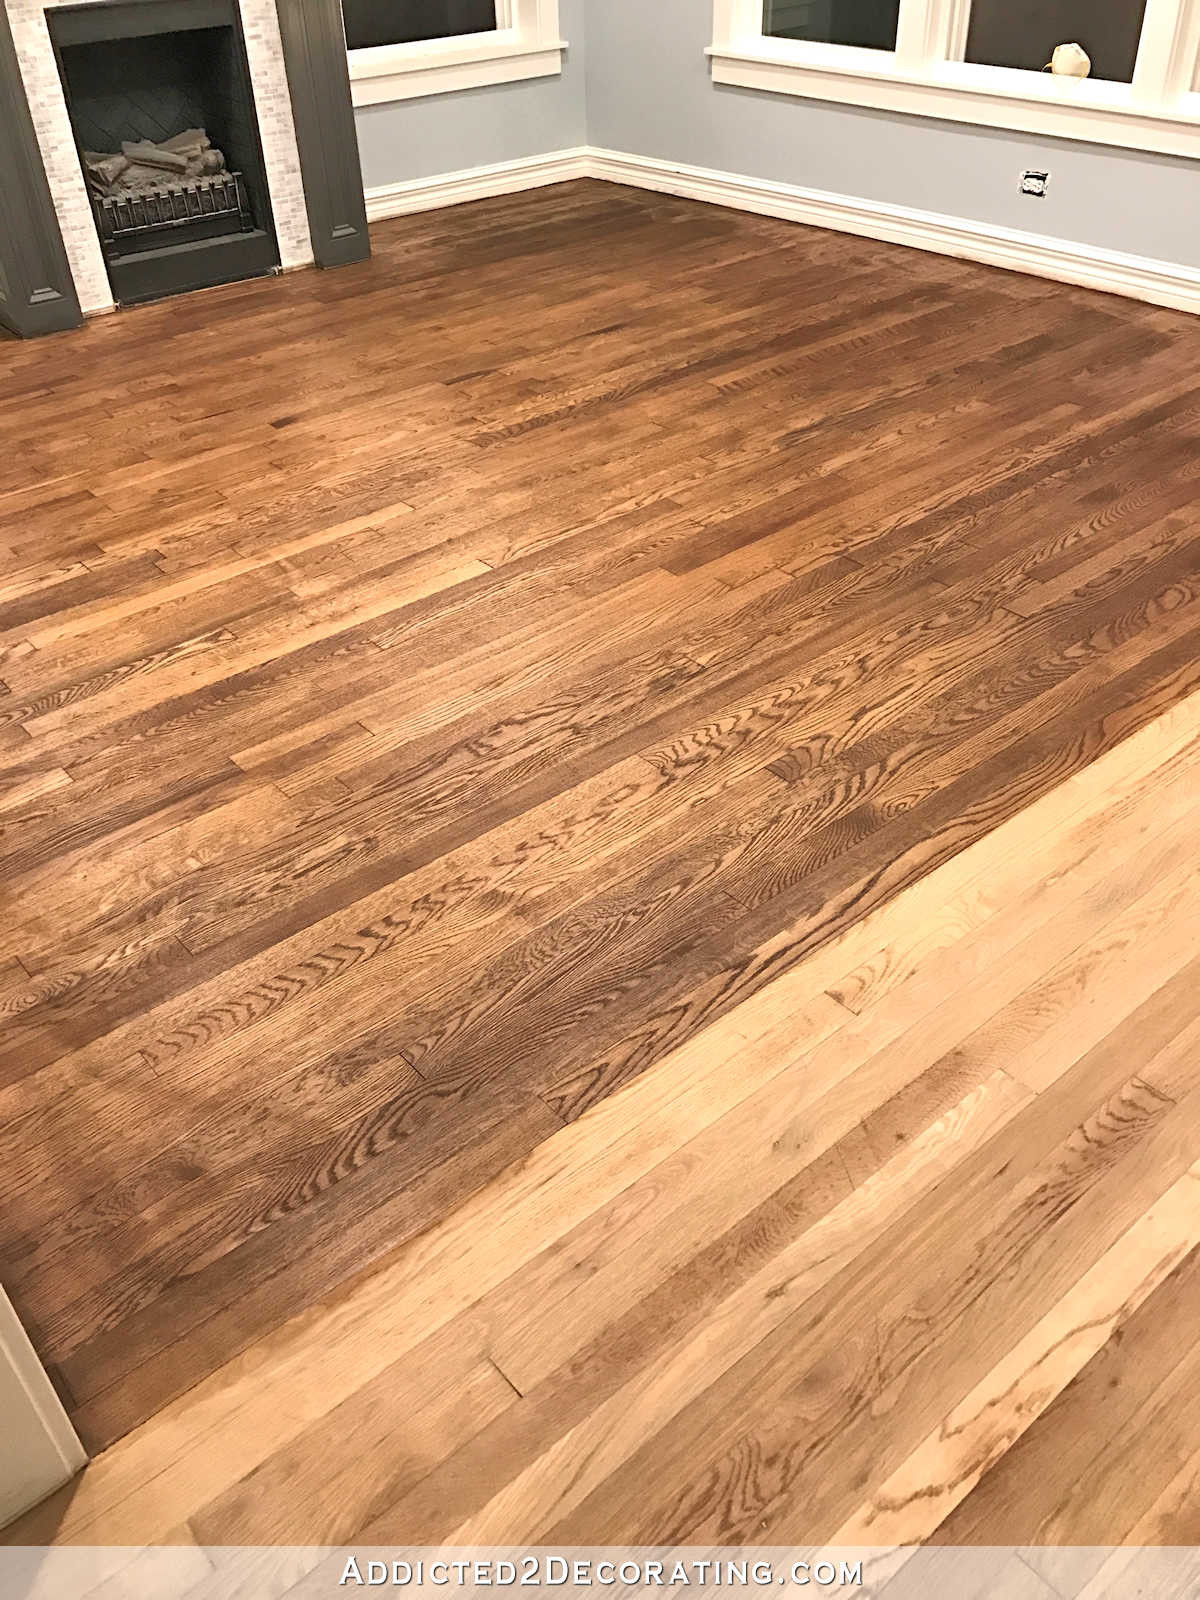 hardwood floor stain colors popular of adventures in staining my red oak hardwood floors products process for staining red oak hardwood floors 7 stain on the living room floor